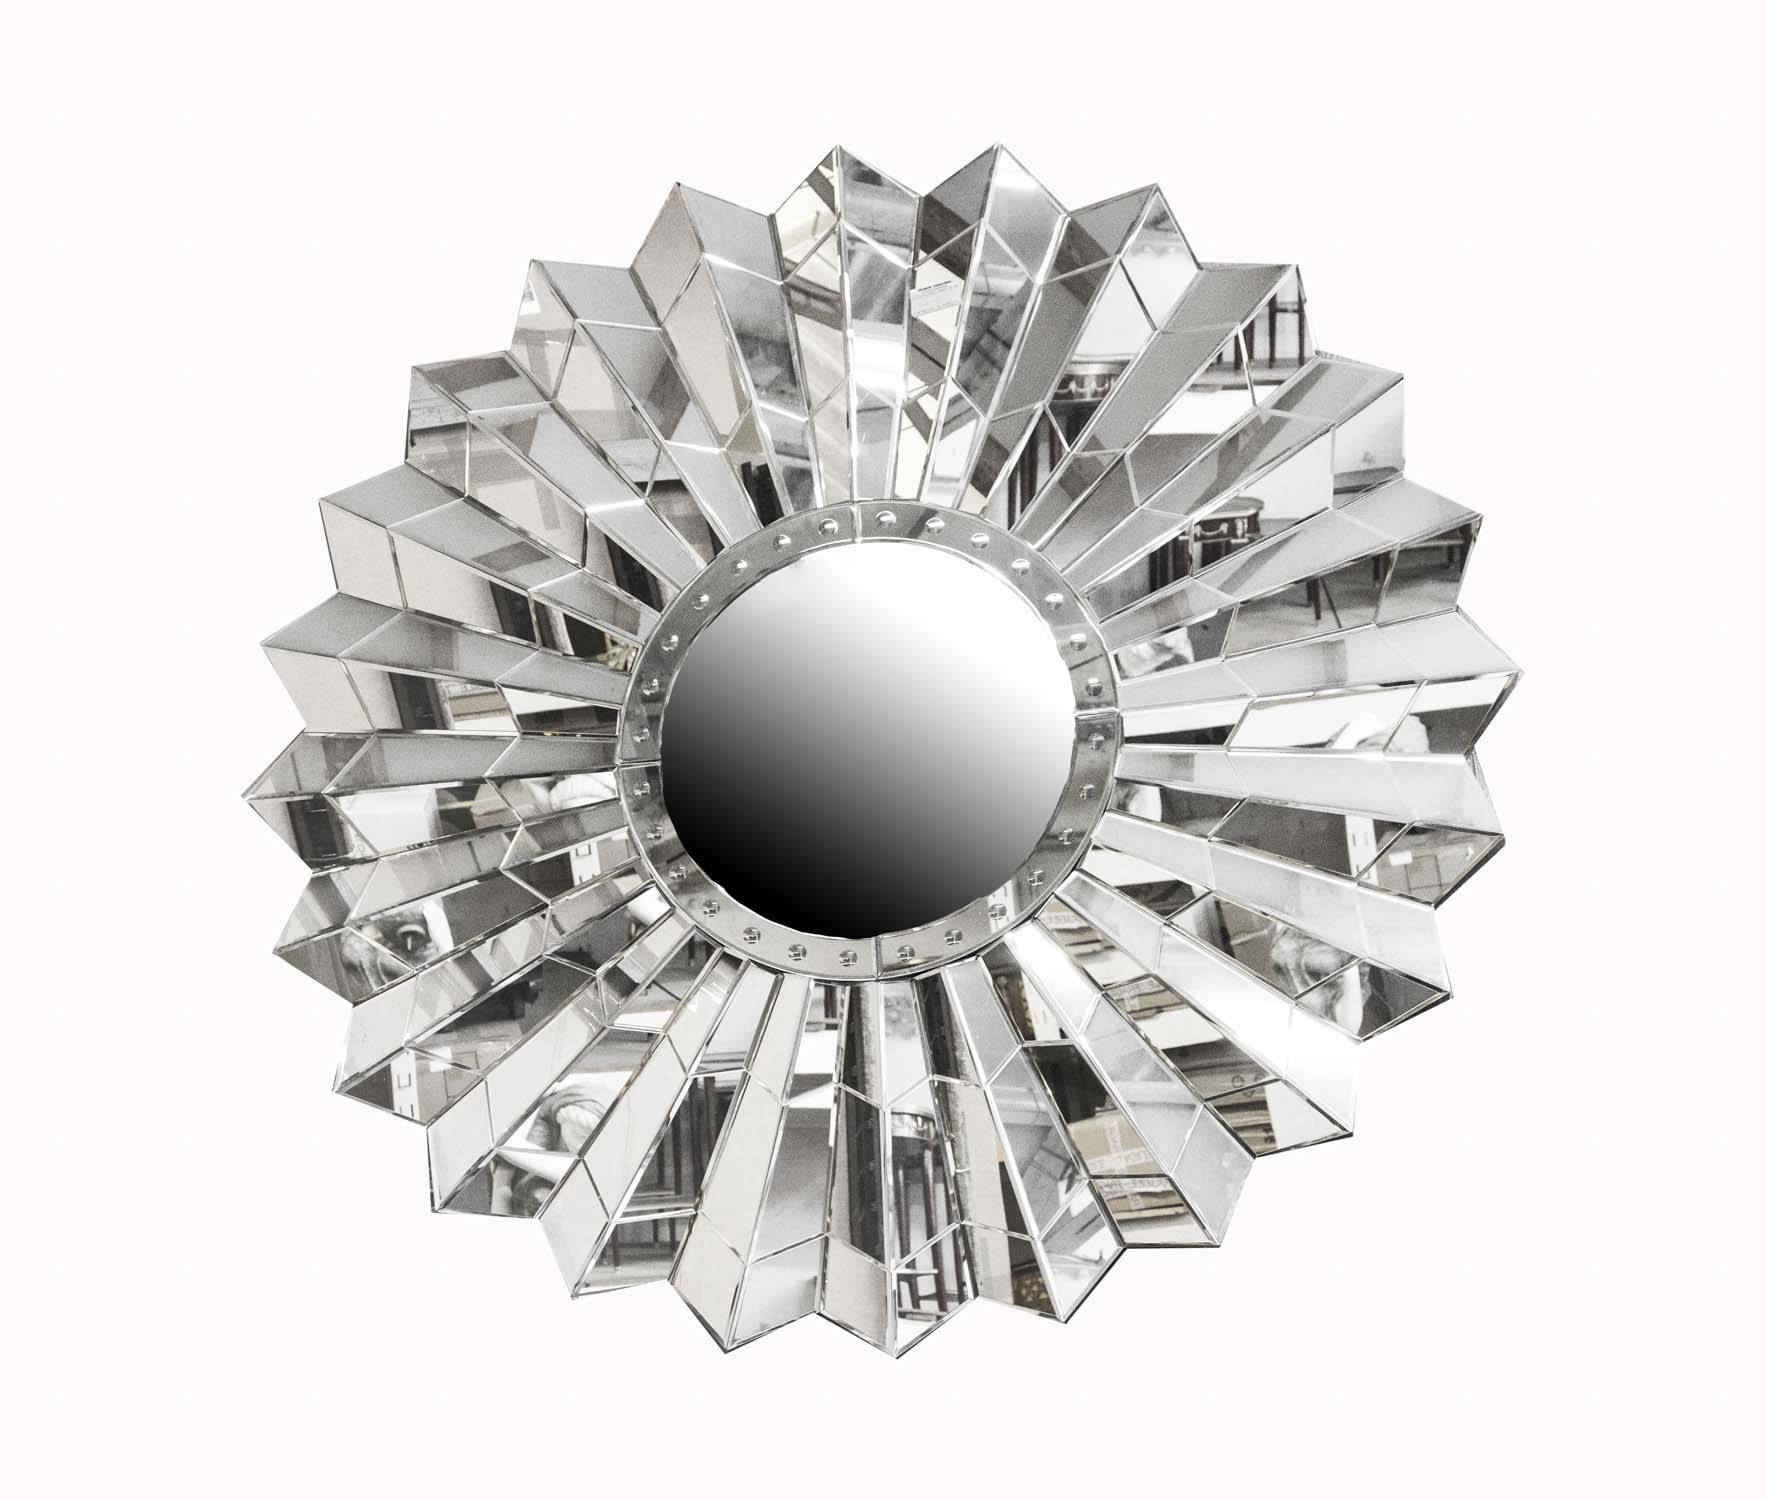 Circular Art Deco Style Sunburst Mirror | Vinterior with regard to Art Deco Style Mirrors (Image 14 of 25)